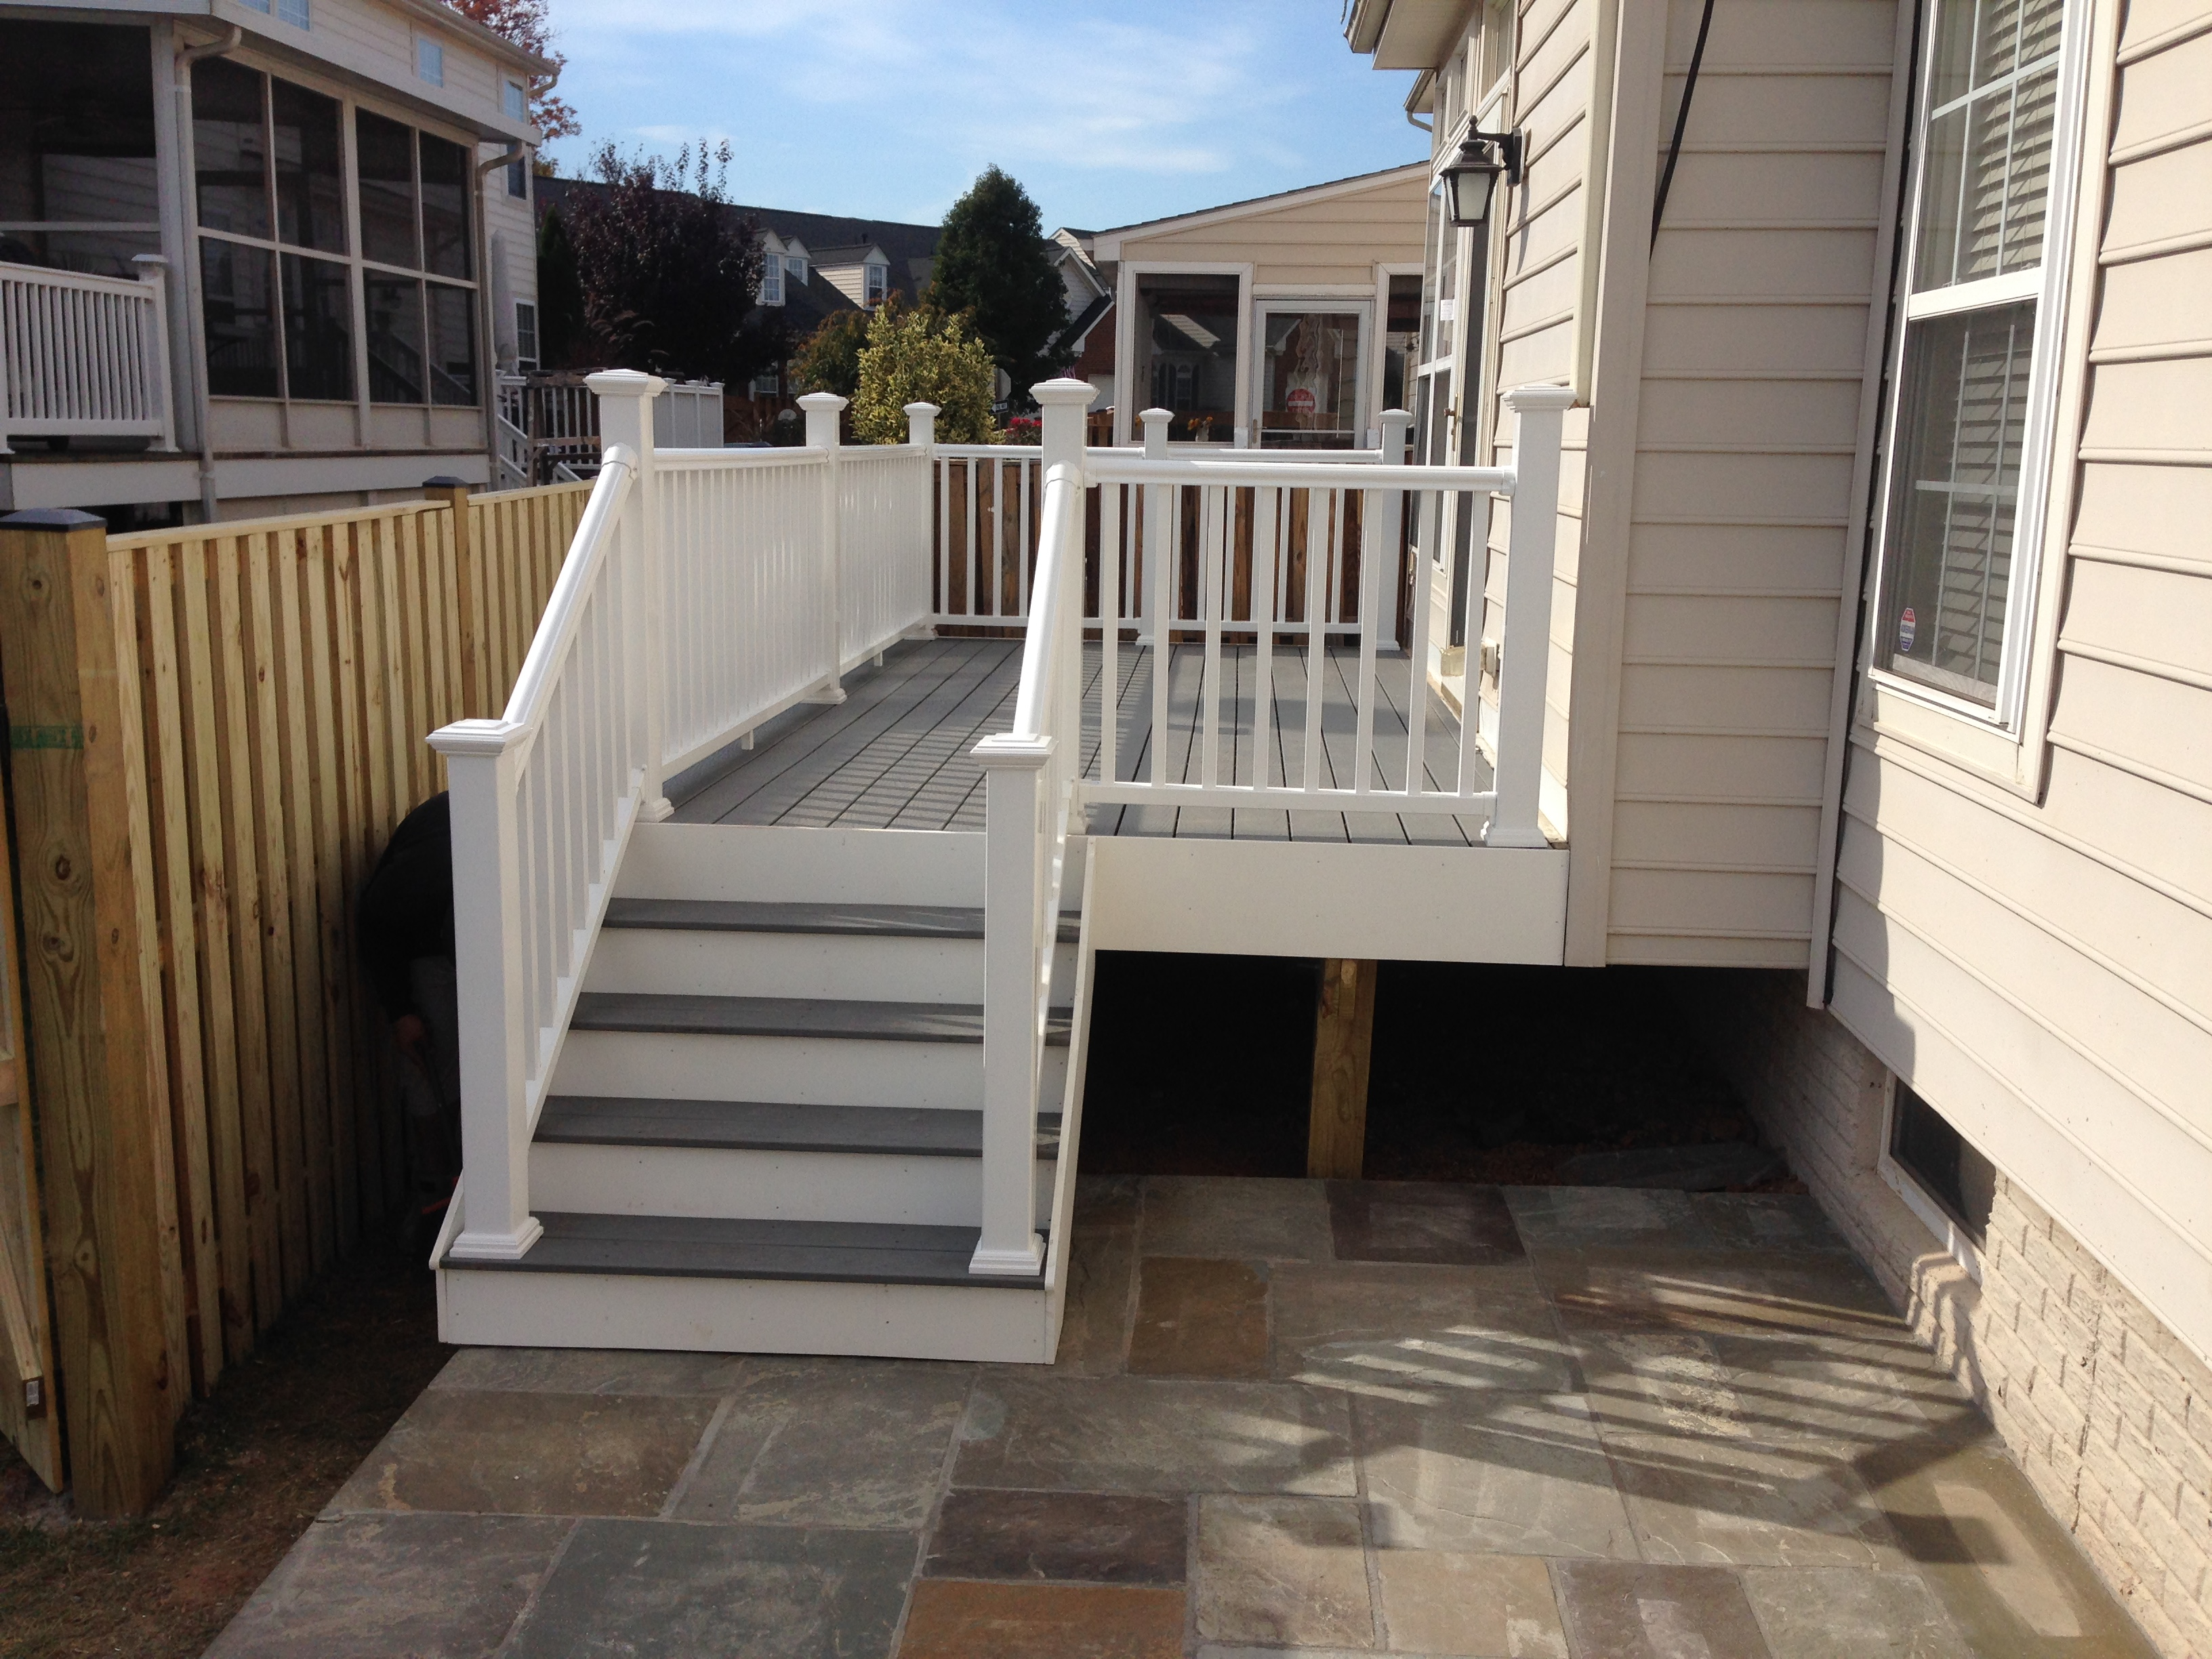 Fiberon Fencing | Home Depot Veranda Composite Decking | Veranda Composite Decking